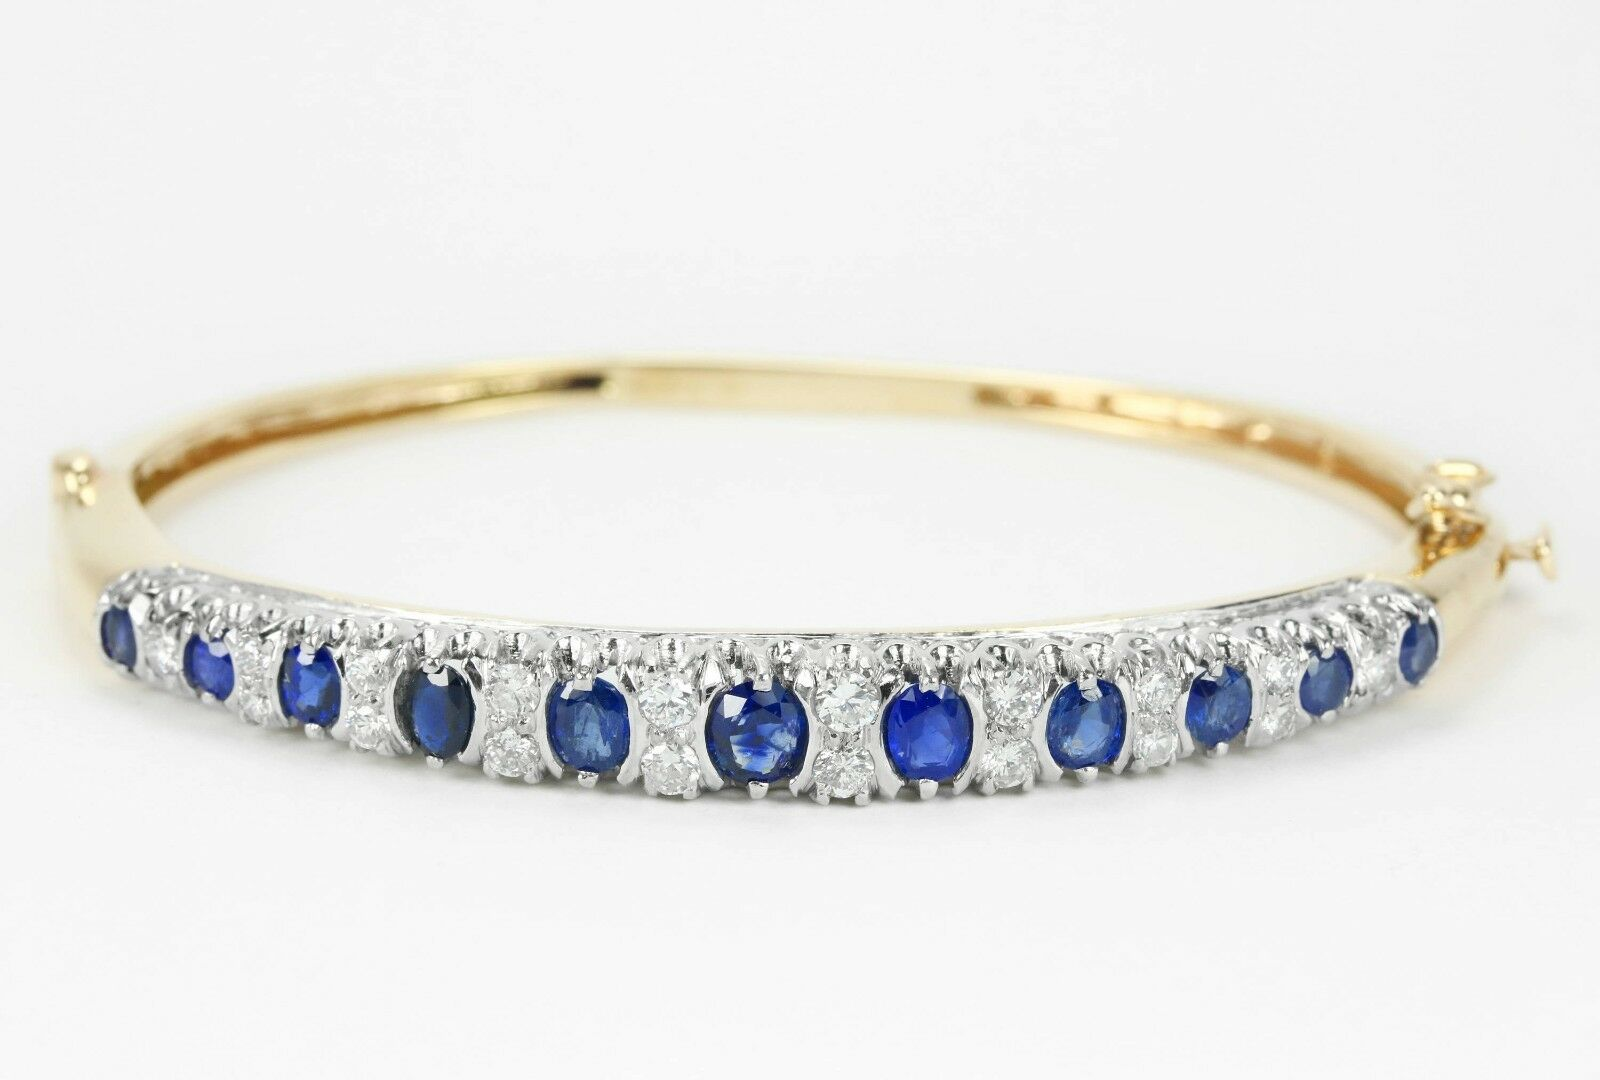 bracelets karat row below yellow and bangles five top raleigh emerald rubilite bracelet diamond pave nc gold cuff bangle sapphire jewelry